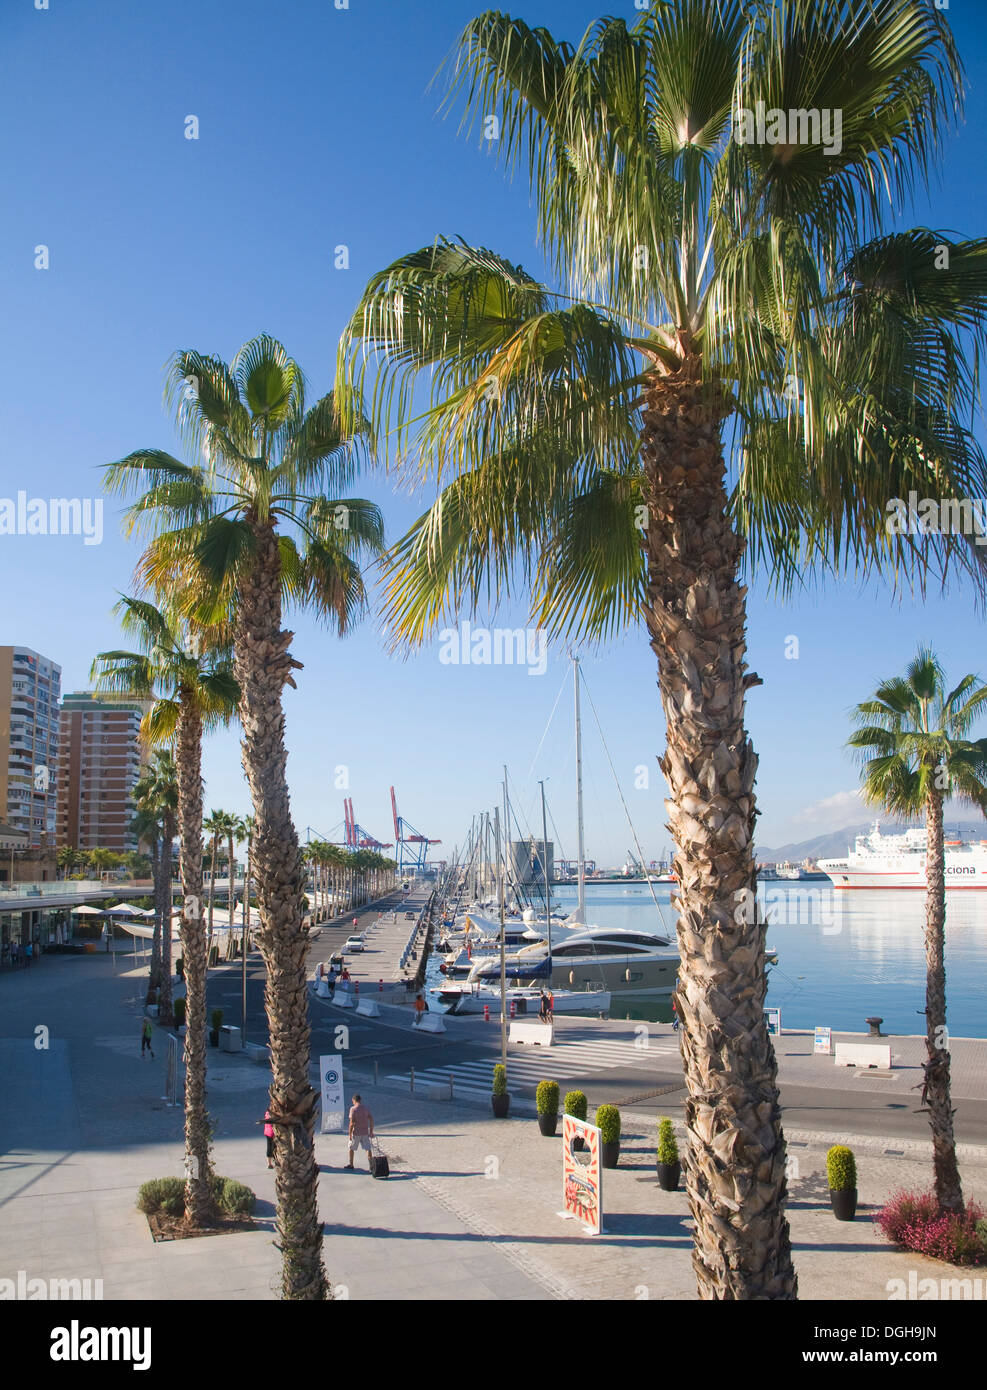 Palm trees in new port development Muelle Uno in Malaga Spain - Stock Image